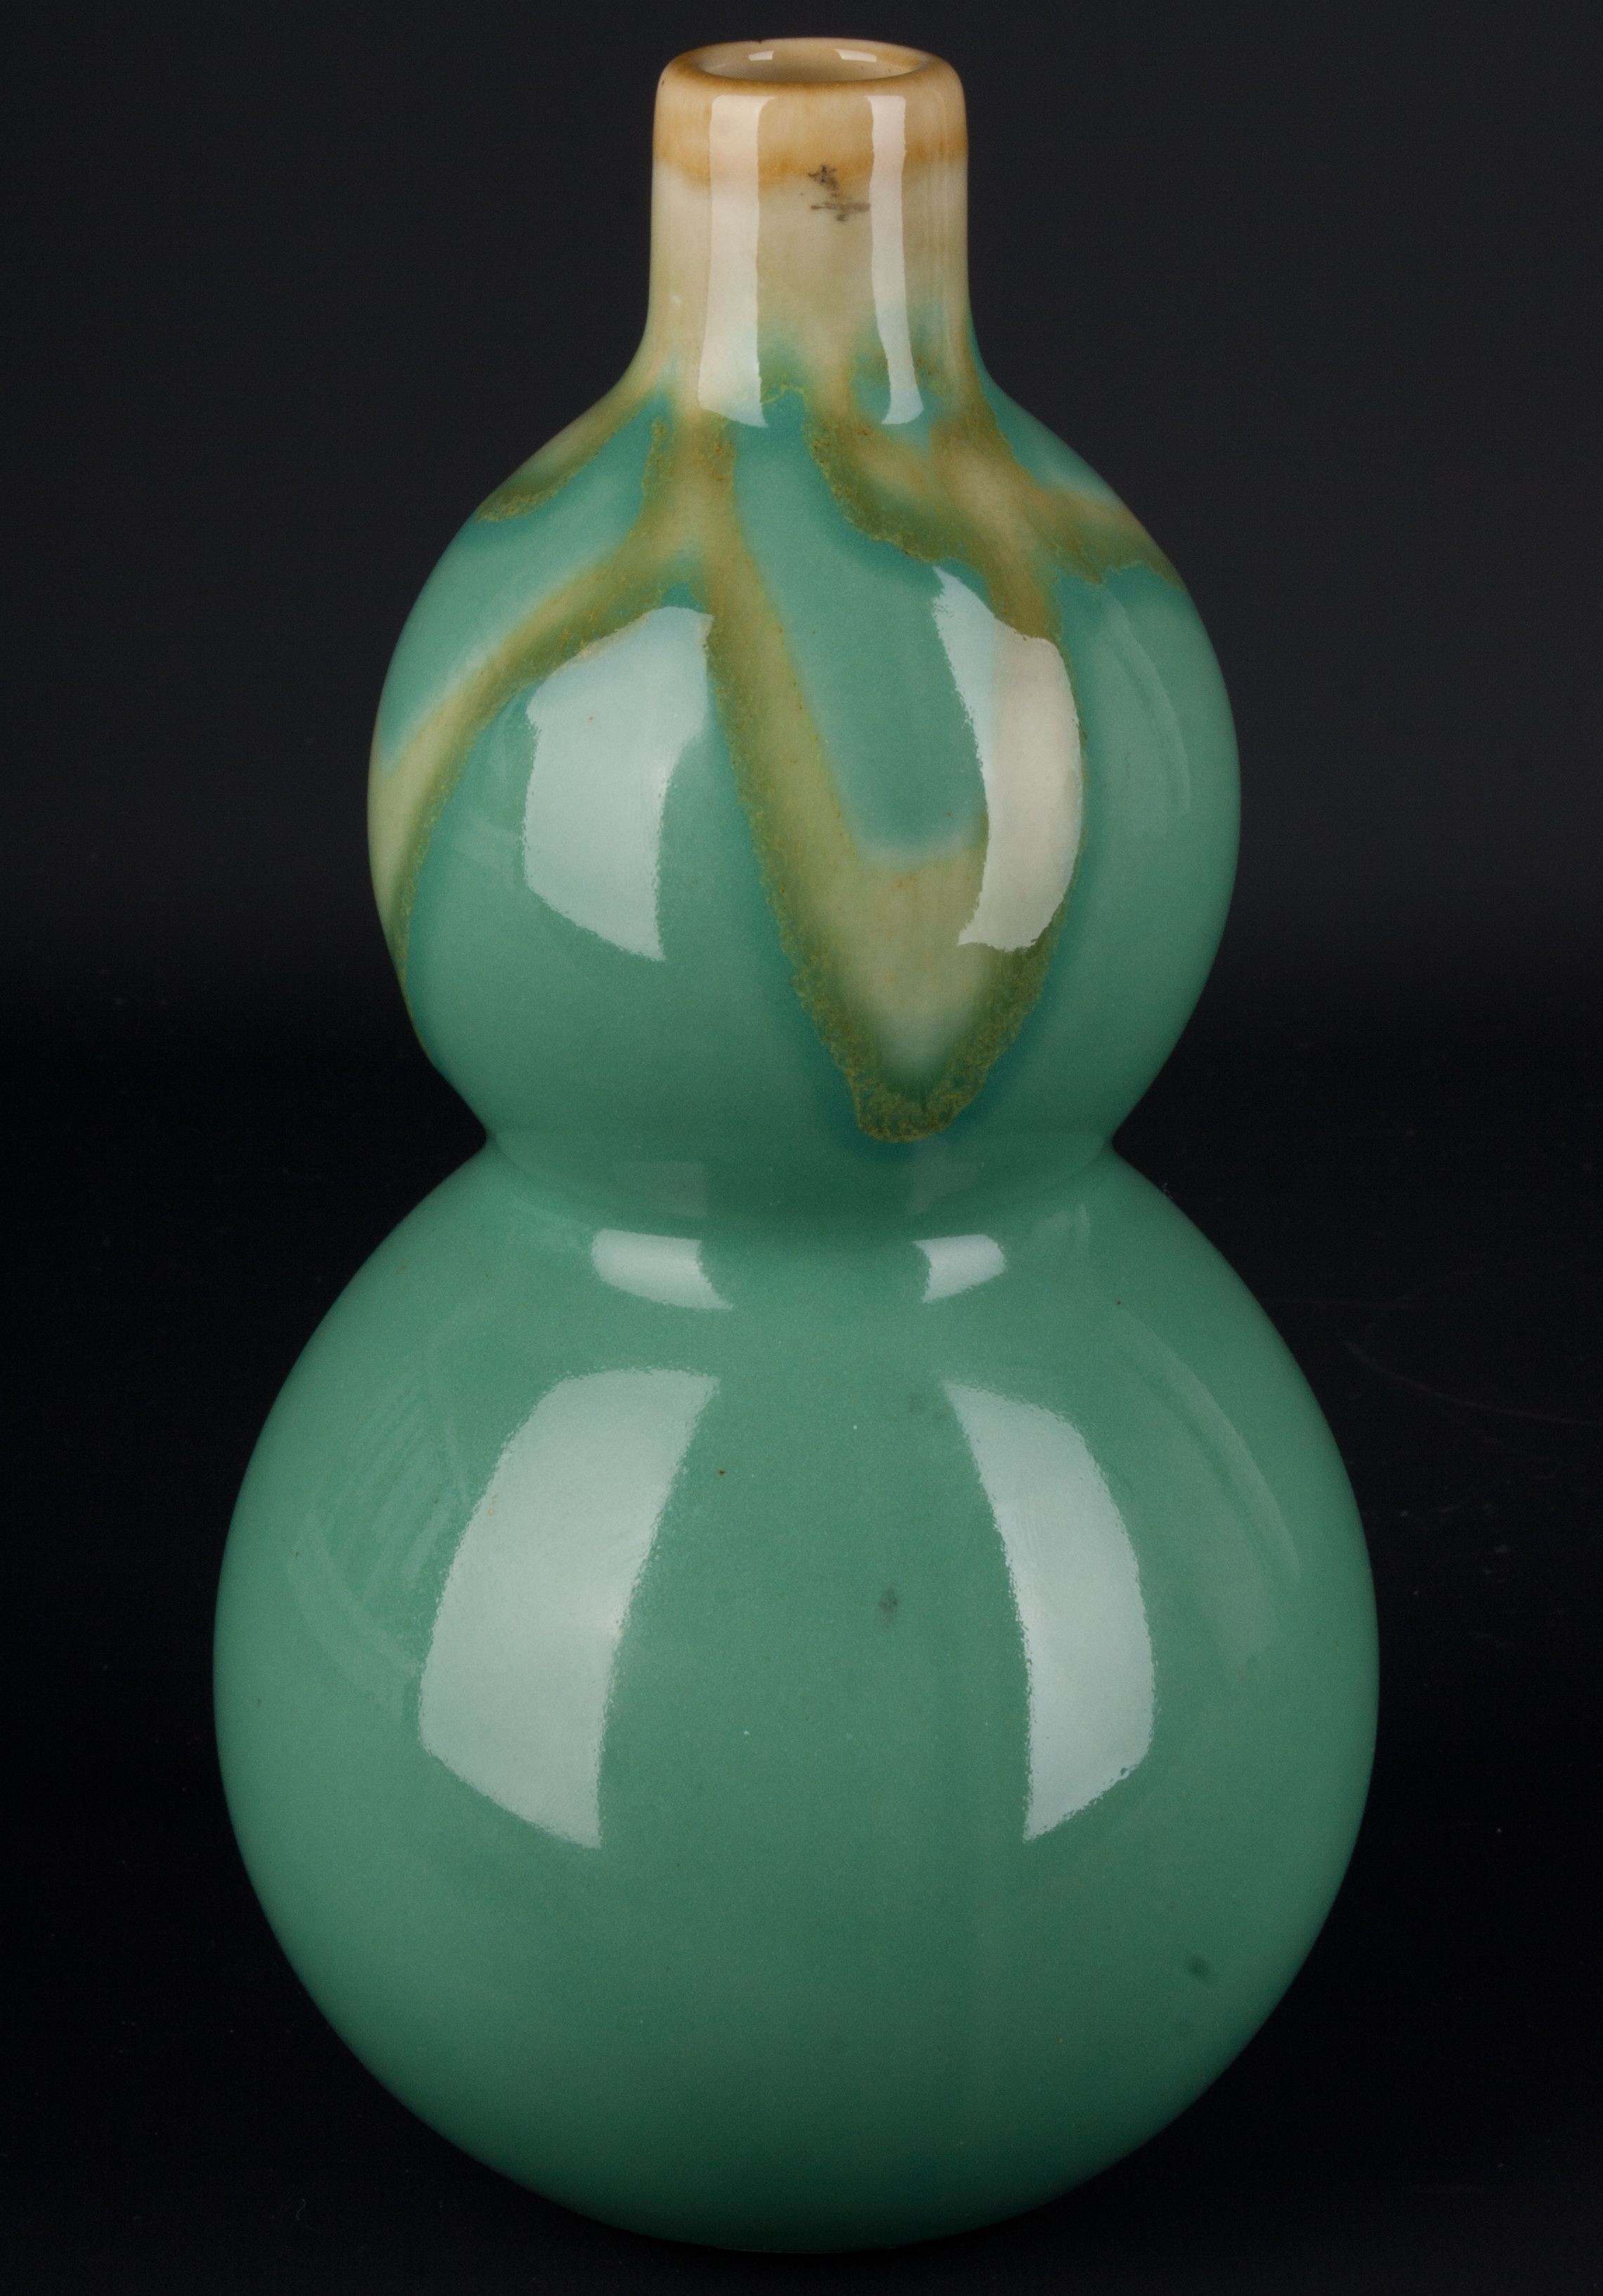 double gourd vase of description a chinese baluster vase cover decorated on regarding description a chinese porcelain double gourd vase 21 cm in height decorated in a striated green